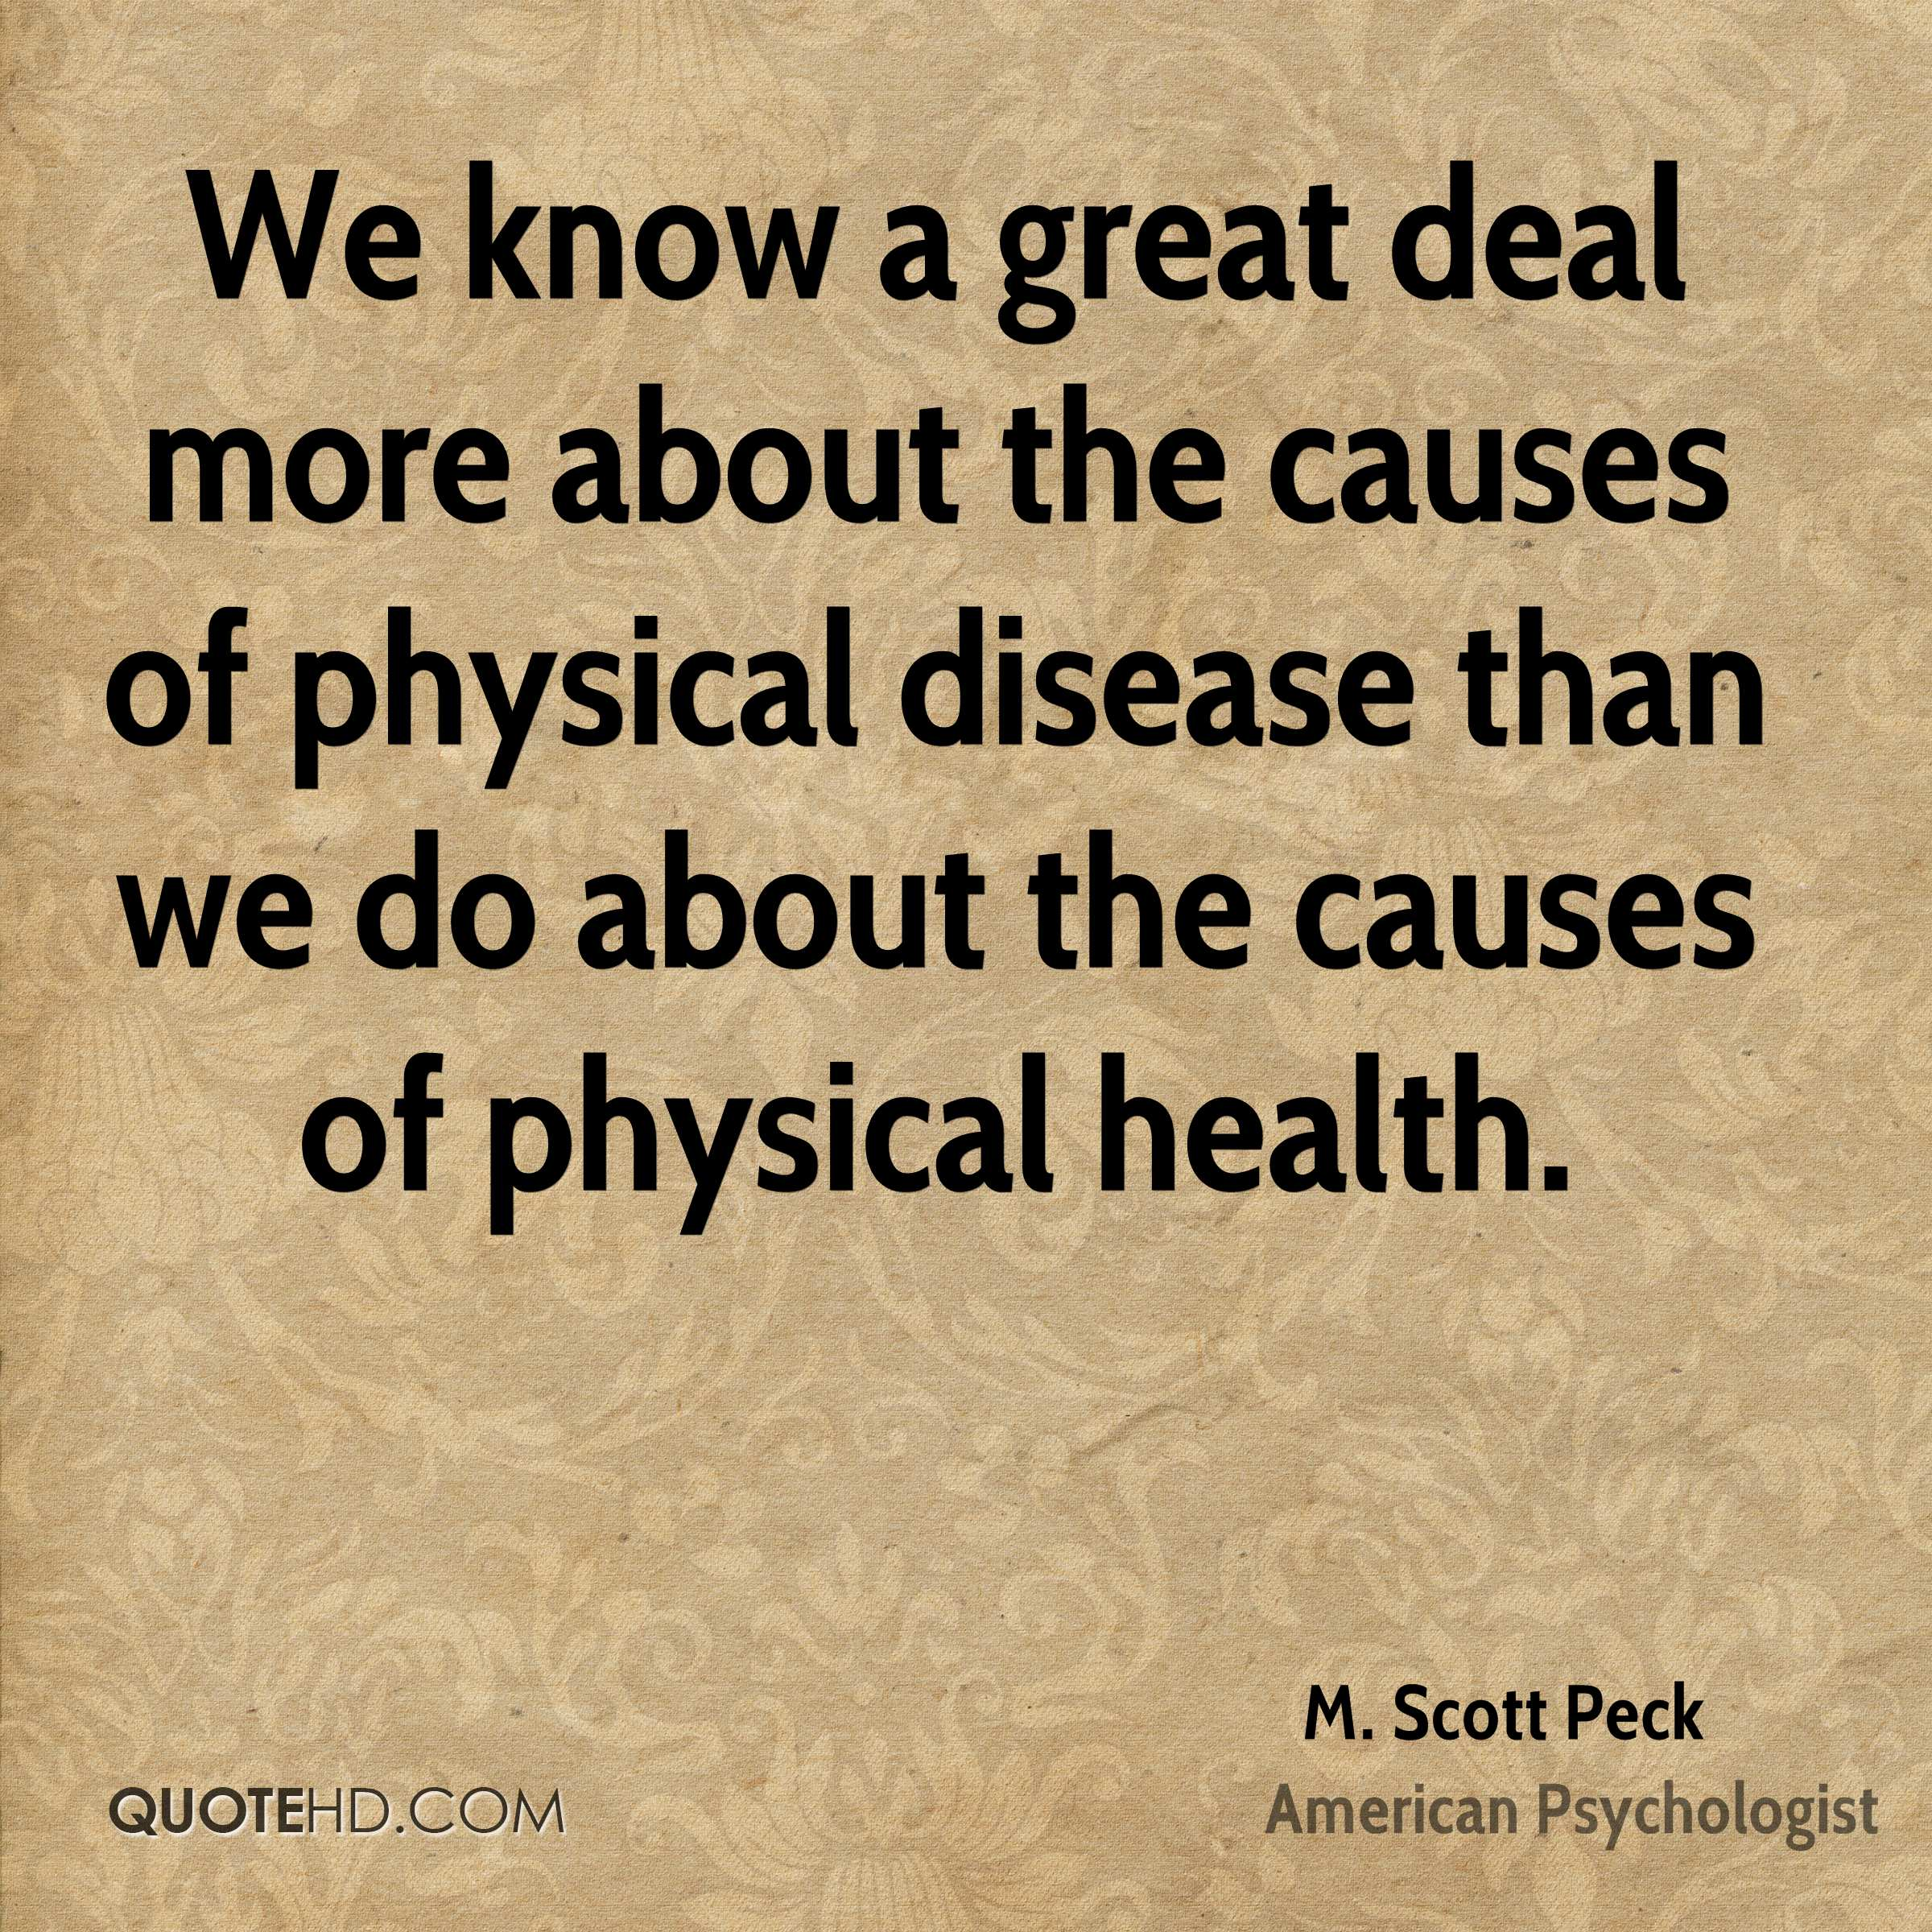 We know a great deal more about the causes of physical disease than we do about the causes of physical health.